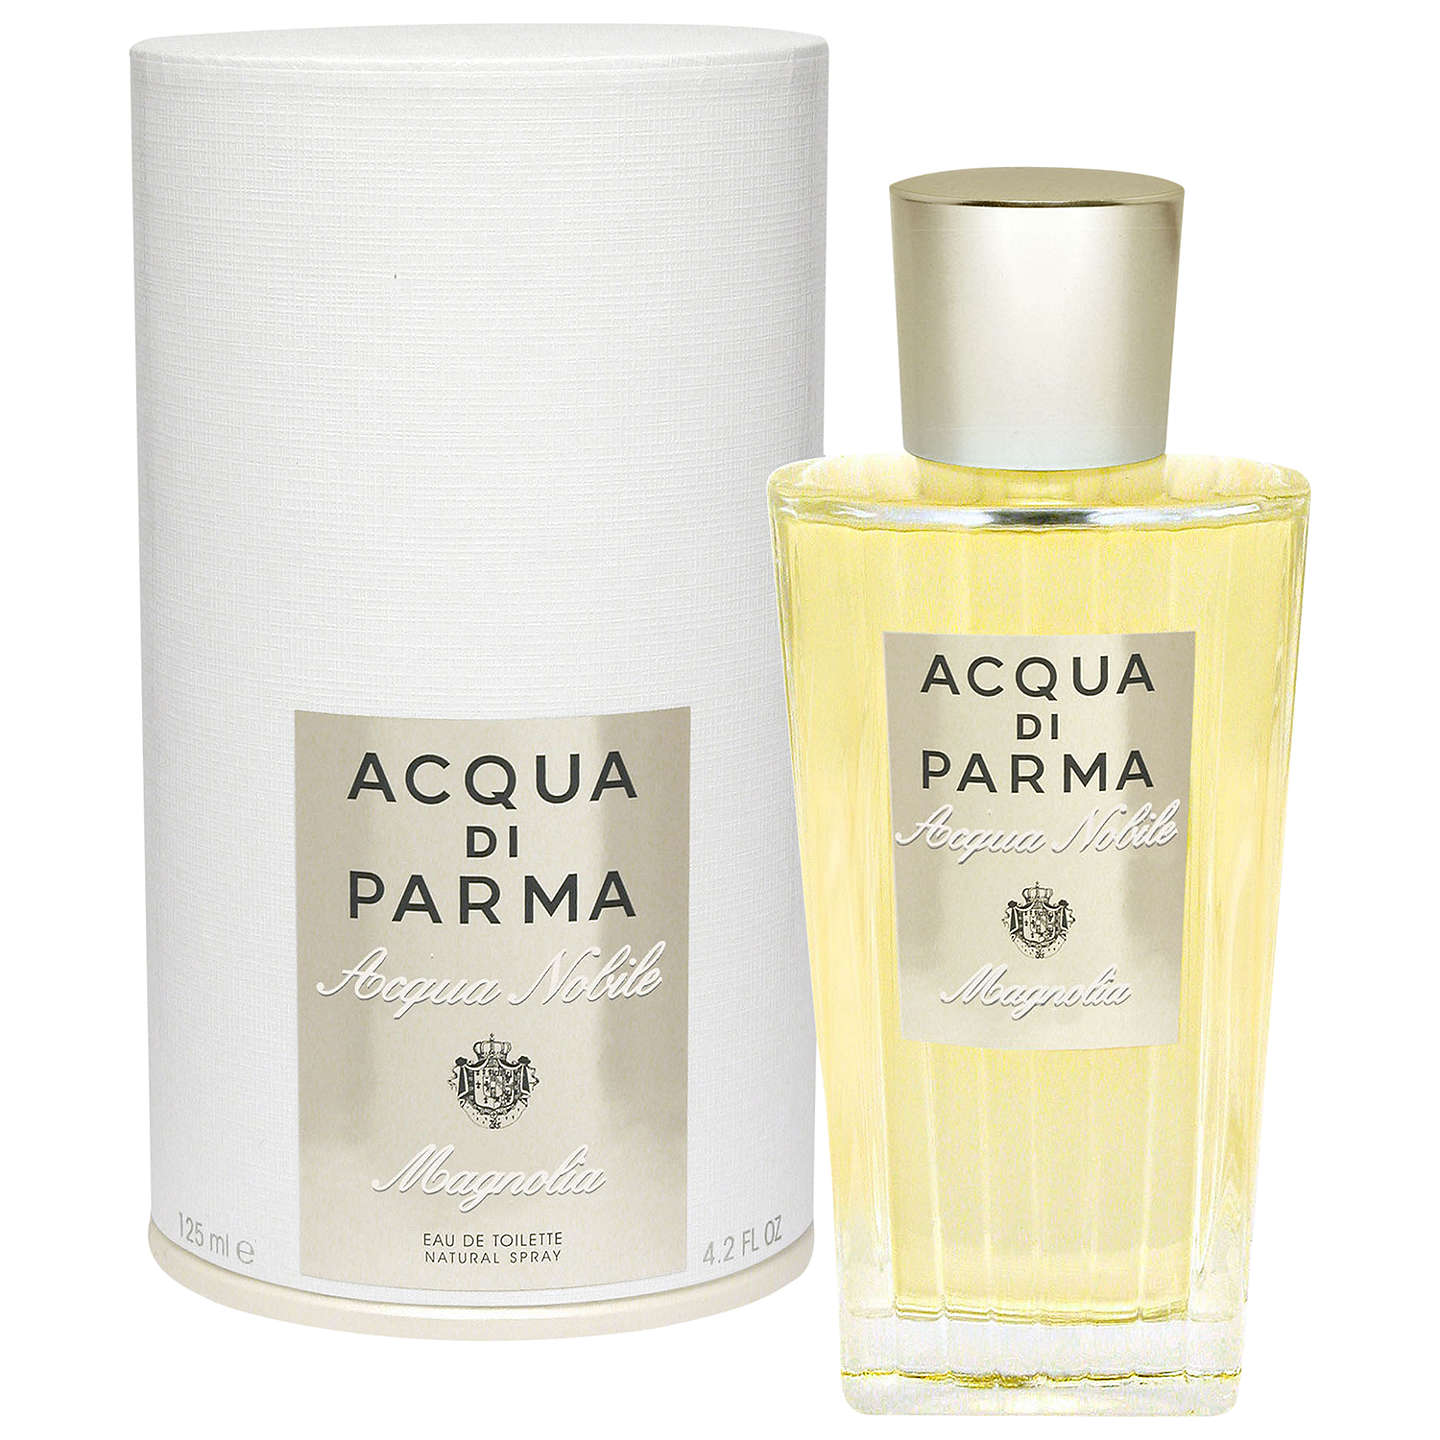 BuyAcqua di Parma Acqua Nobile Magnolia Eau de Toilette, 125ml Online at johnlewis.com